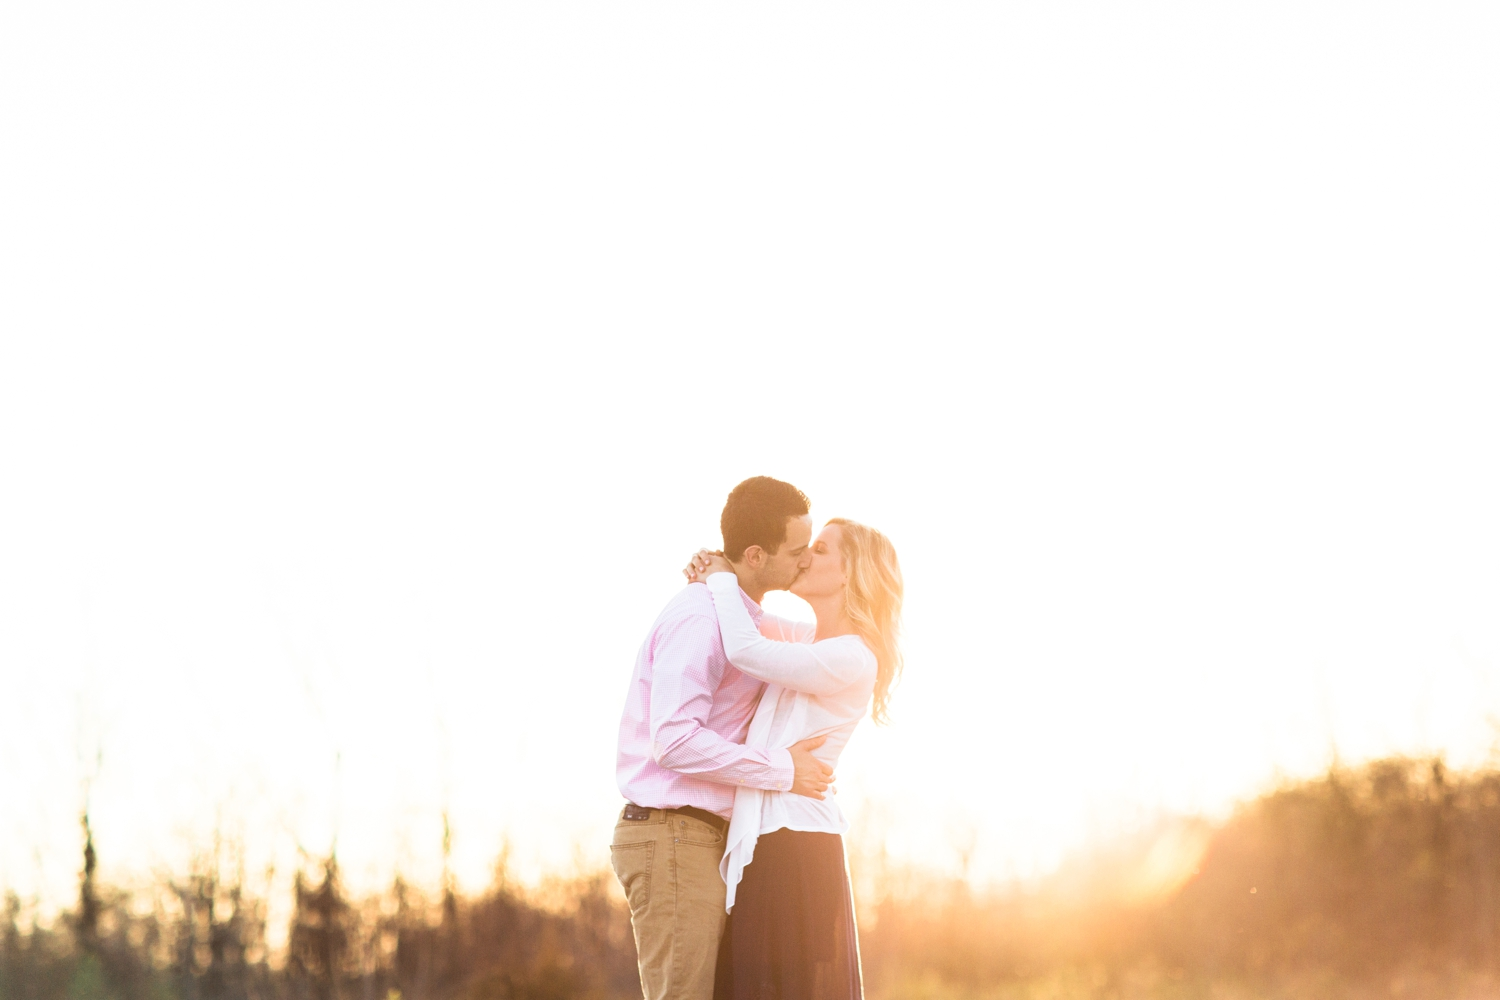 indianapolis_wedding_photographer_golden_hour_engagement_chloe_luka_photography_6137.jpg